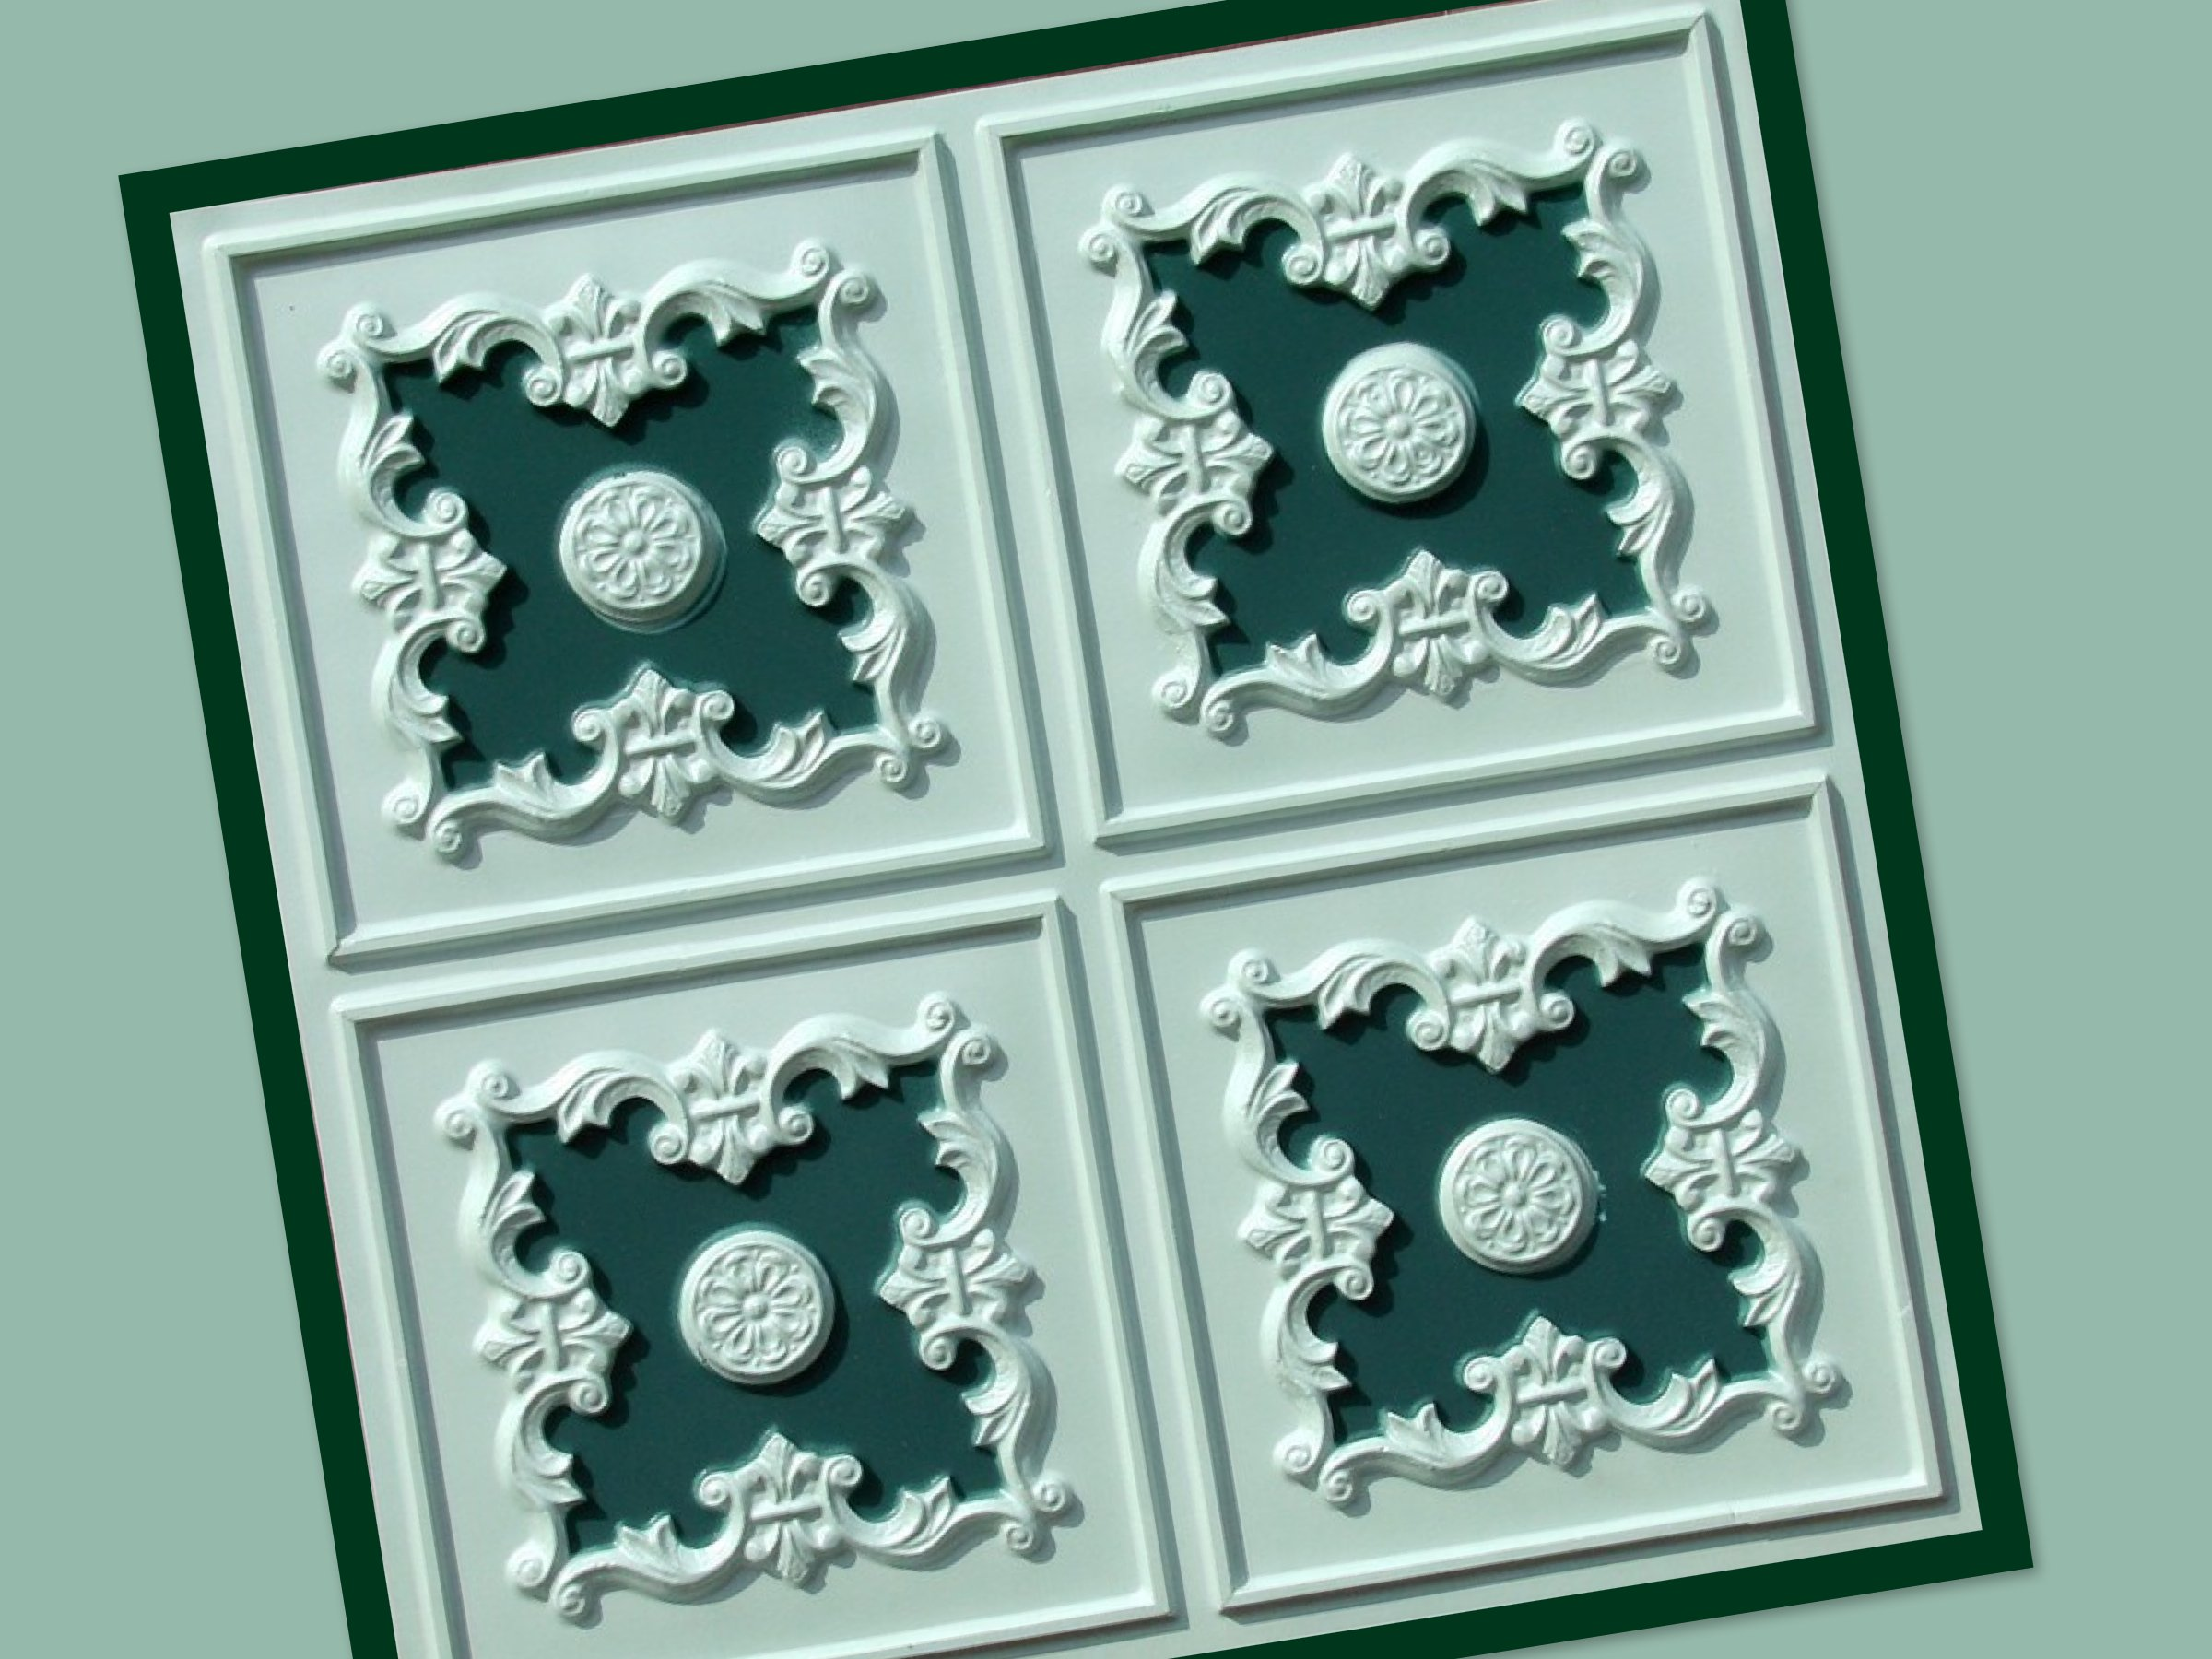 Green Decorative Ceiling Wall Tiles For St Patrick 39 S Day